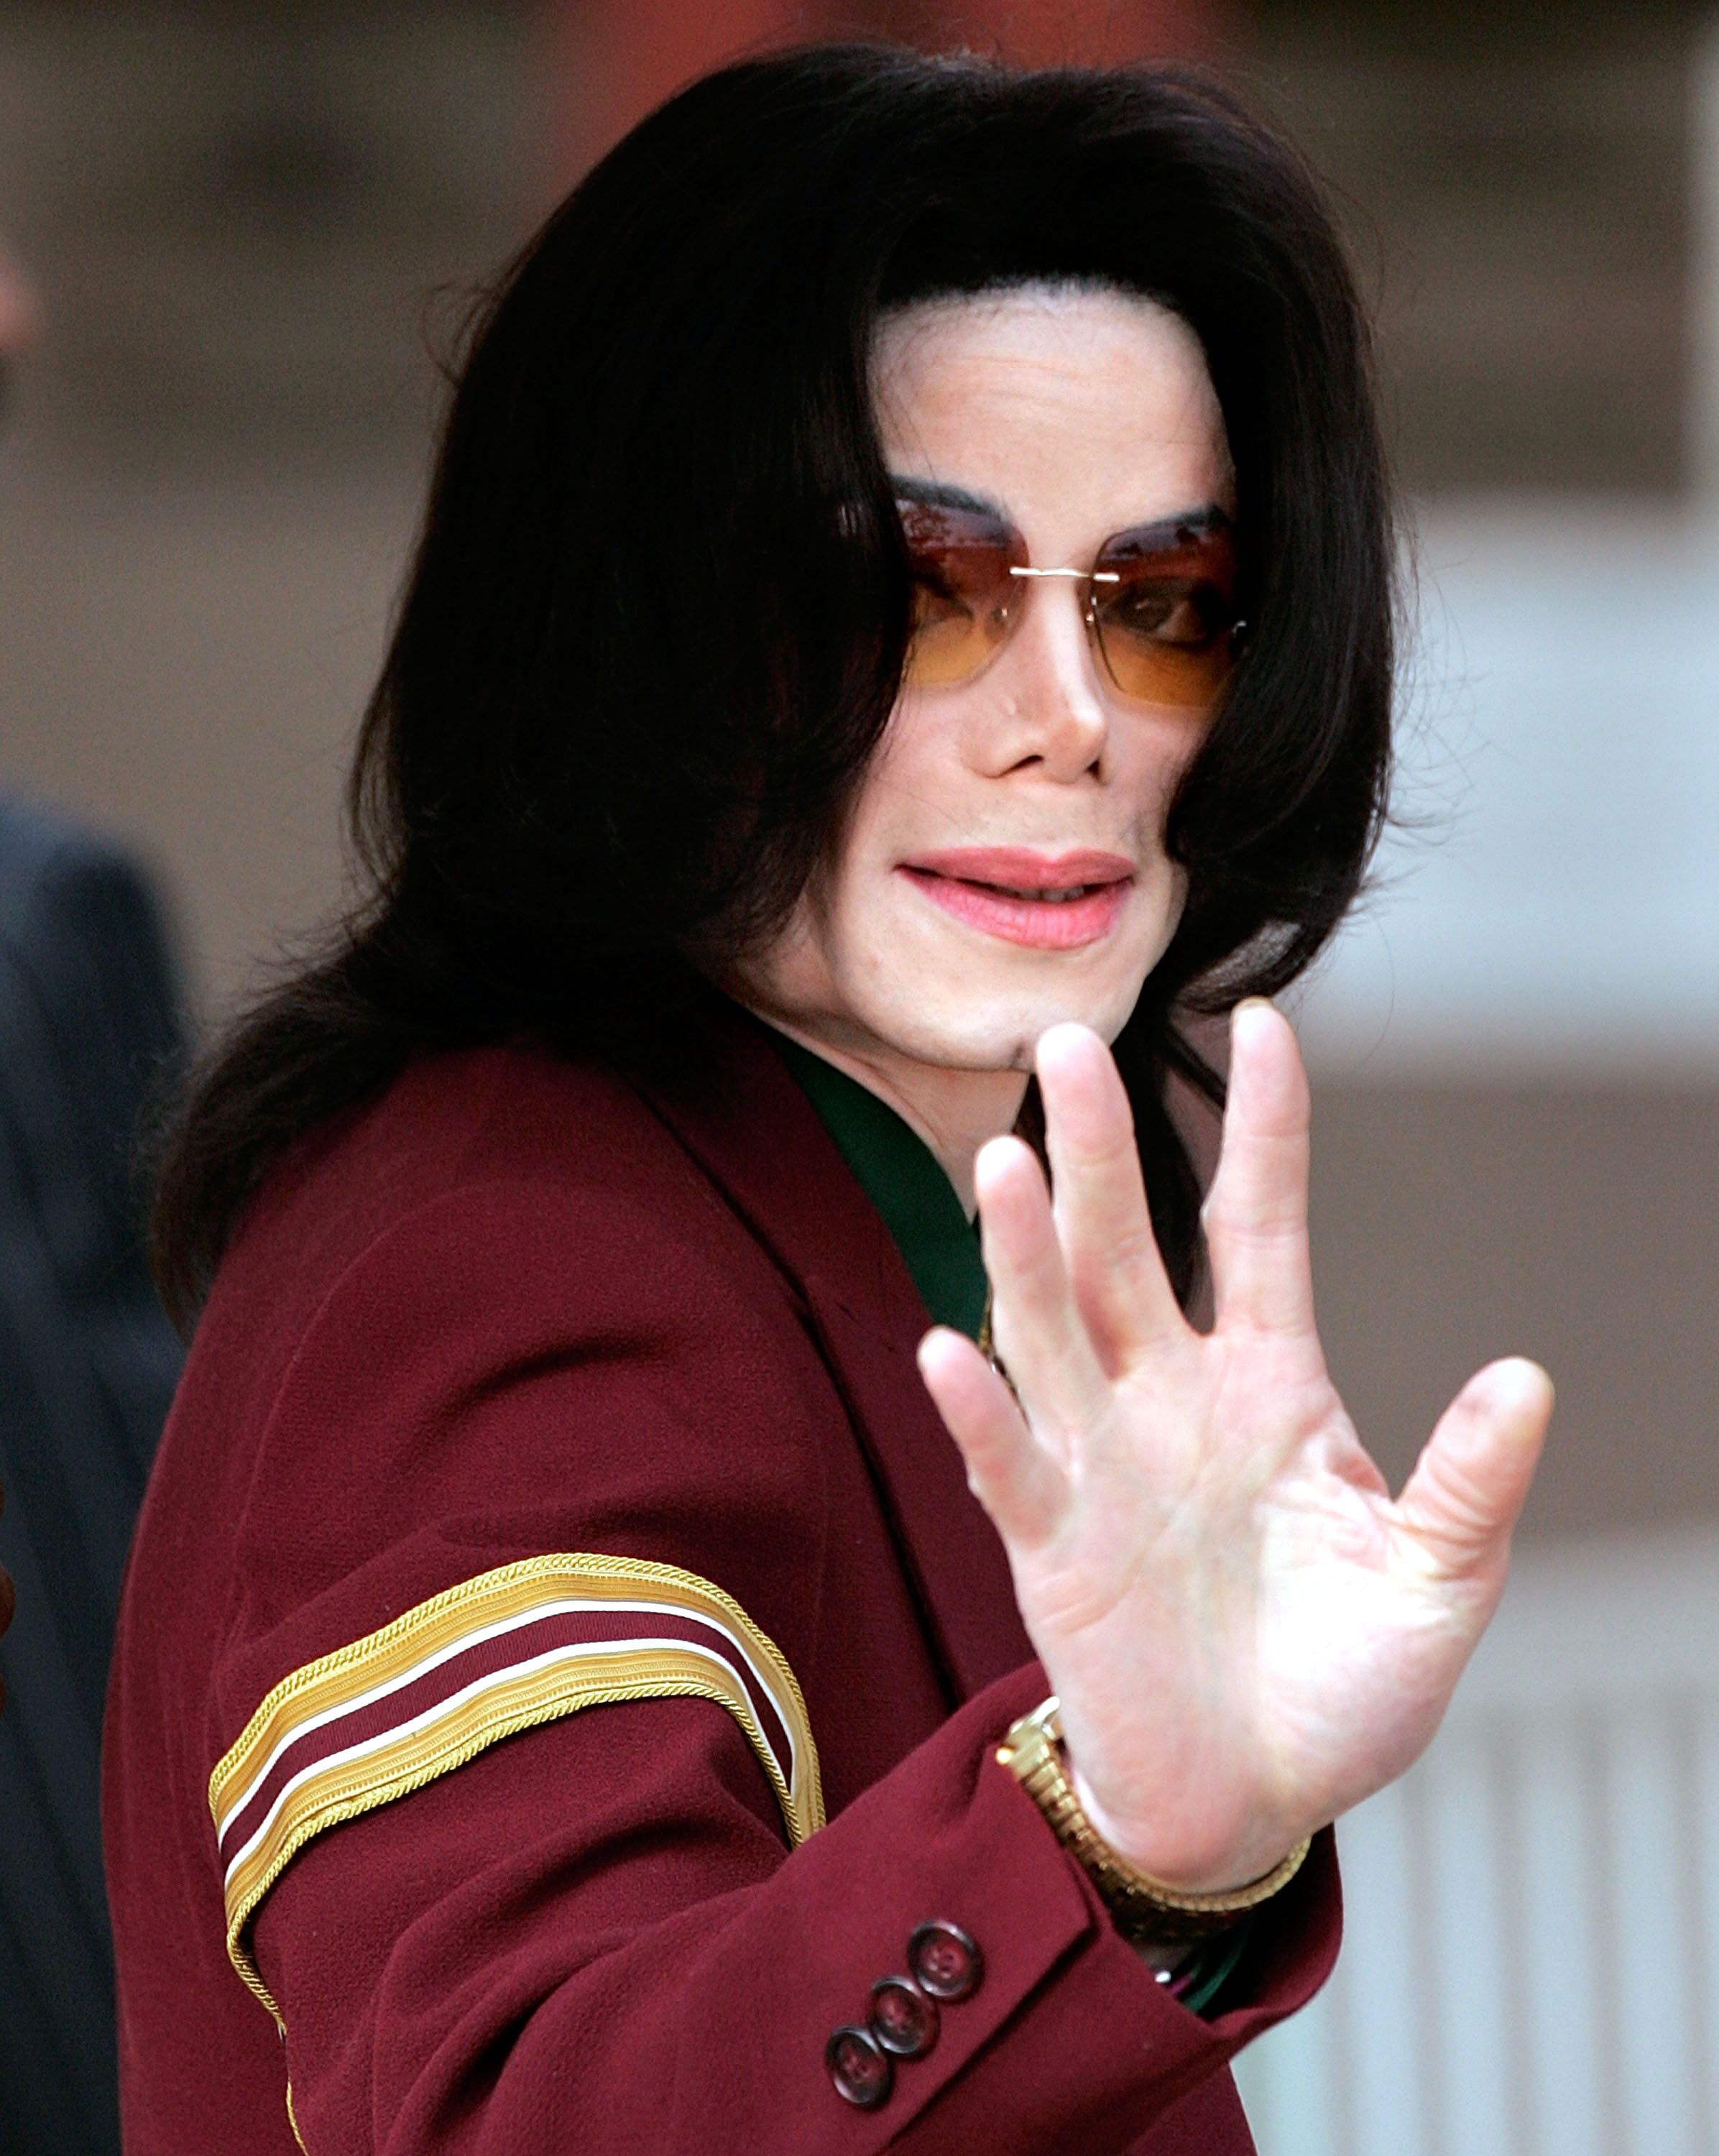 Michael Jackson arrives at the Santa Maria Superior Court for testimony during the third week of his child molestation trial March 17, 2005 in Santa Maria, California | Photo: Getty Images